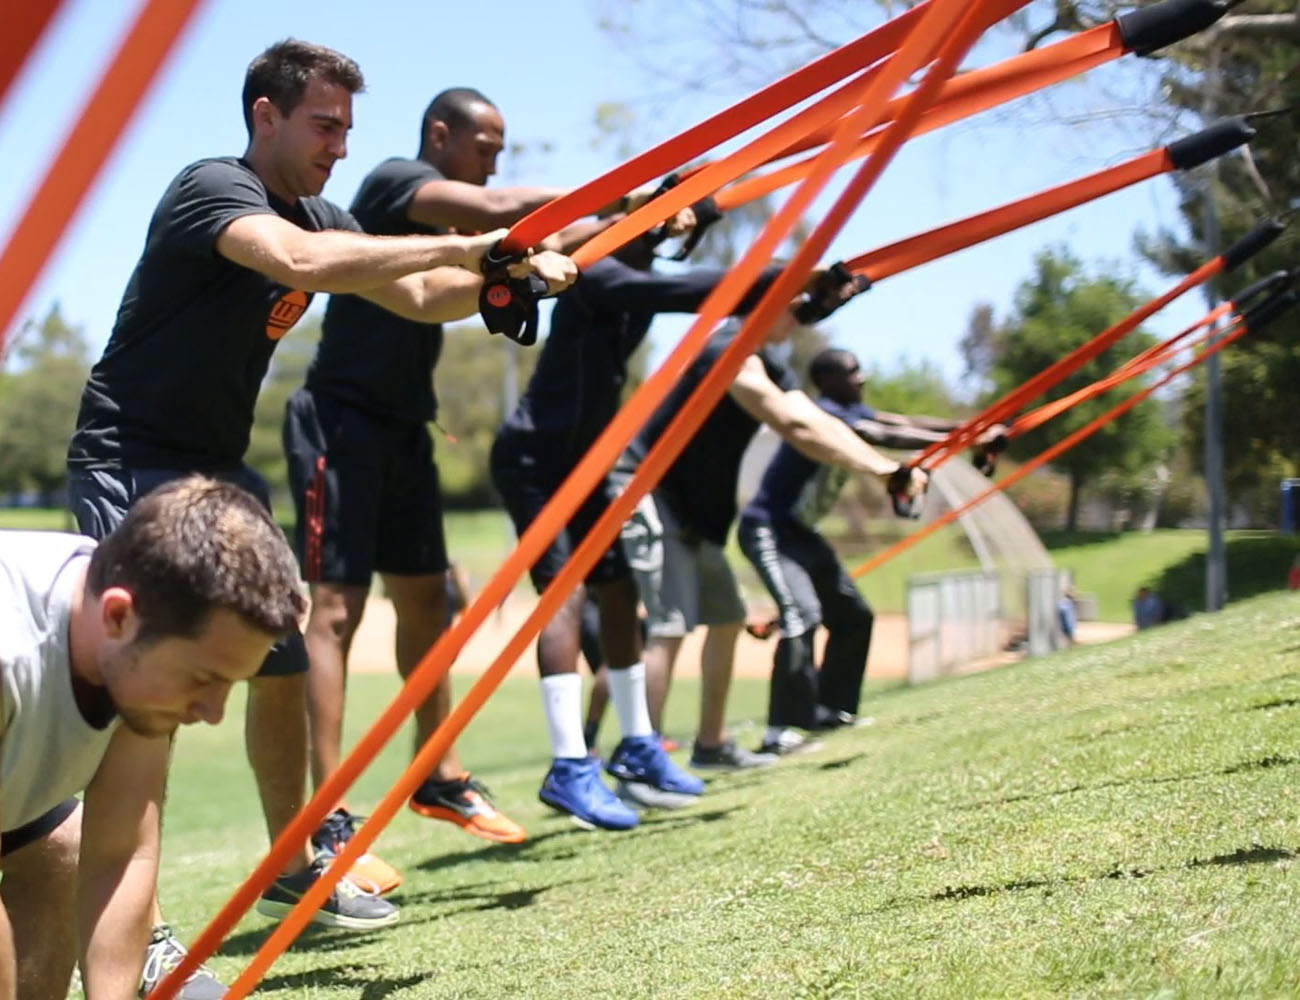 TFT : A Total Body Workout You Can Do Anywhere